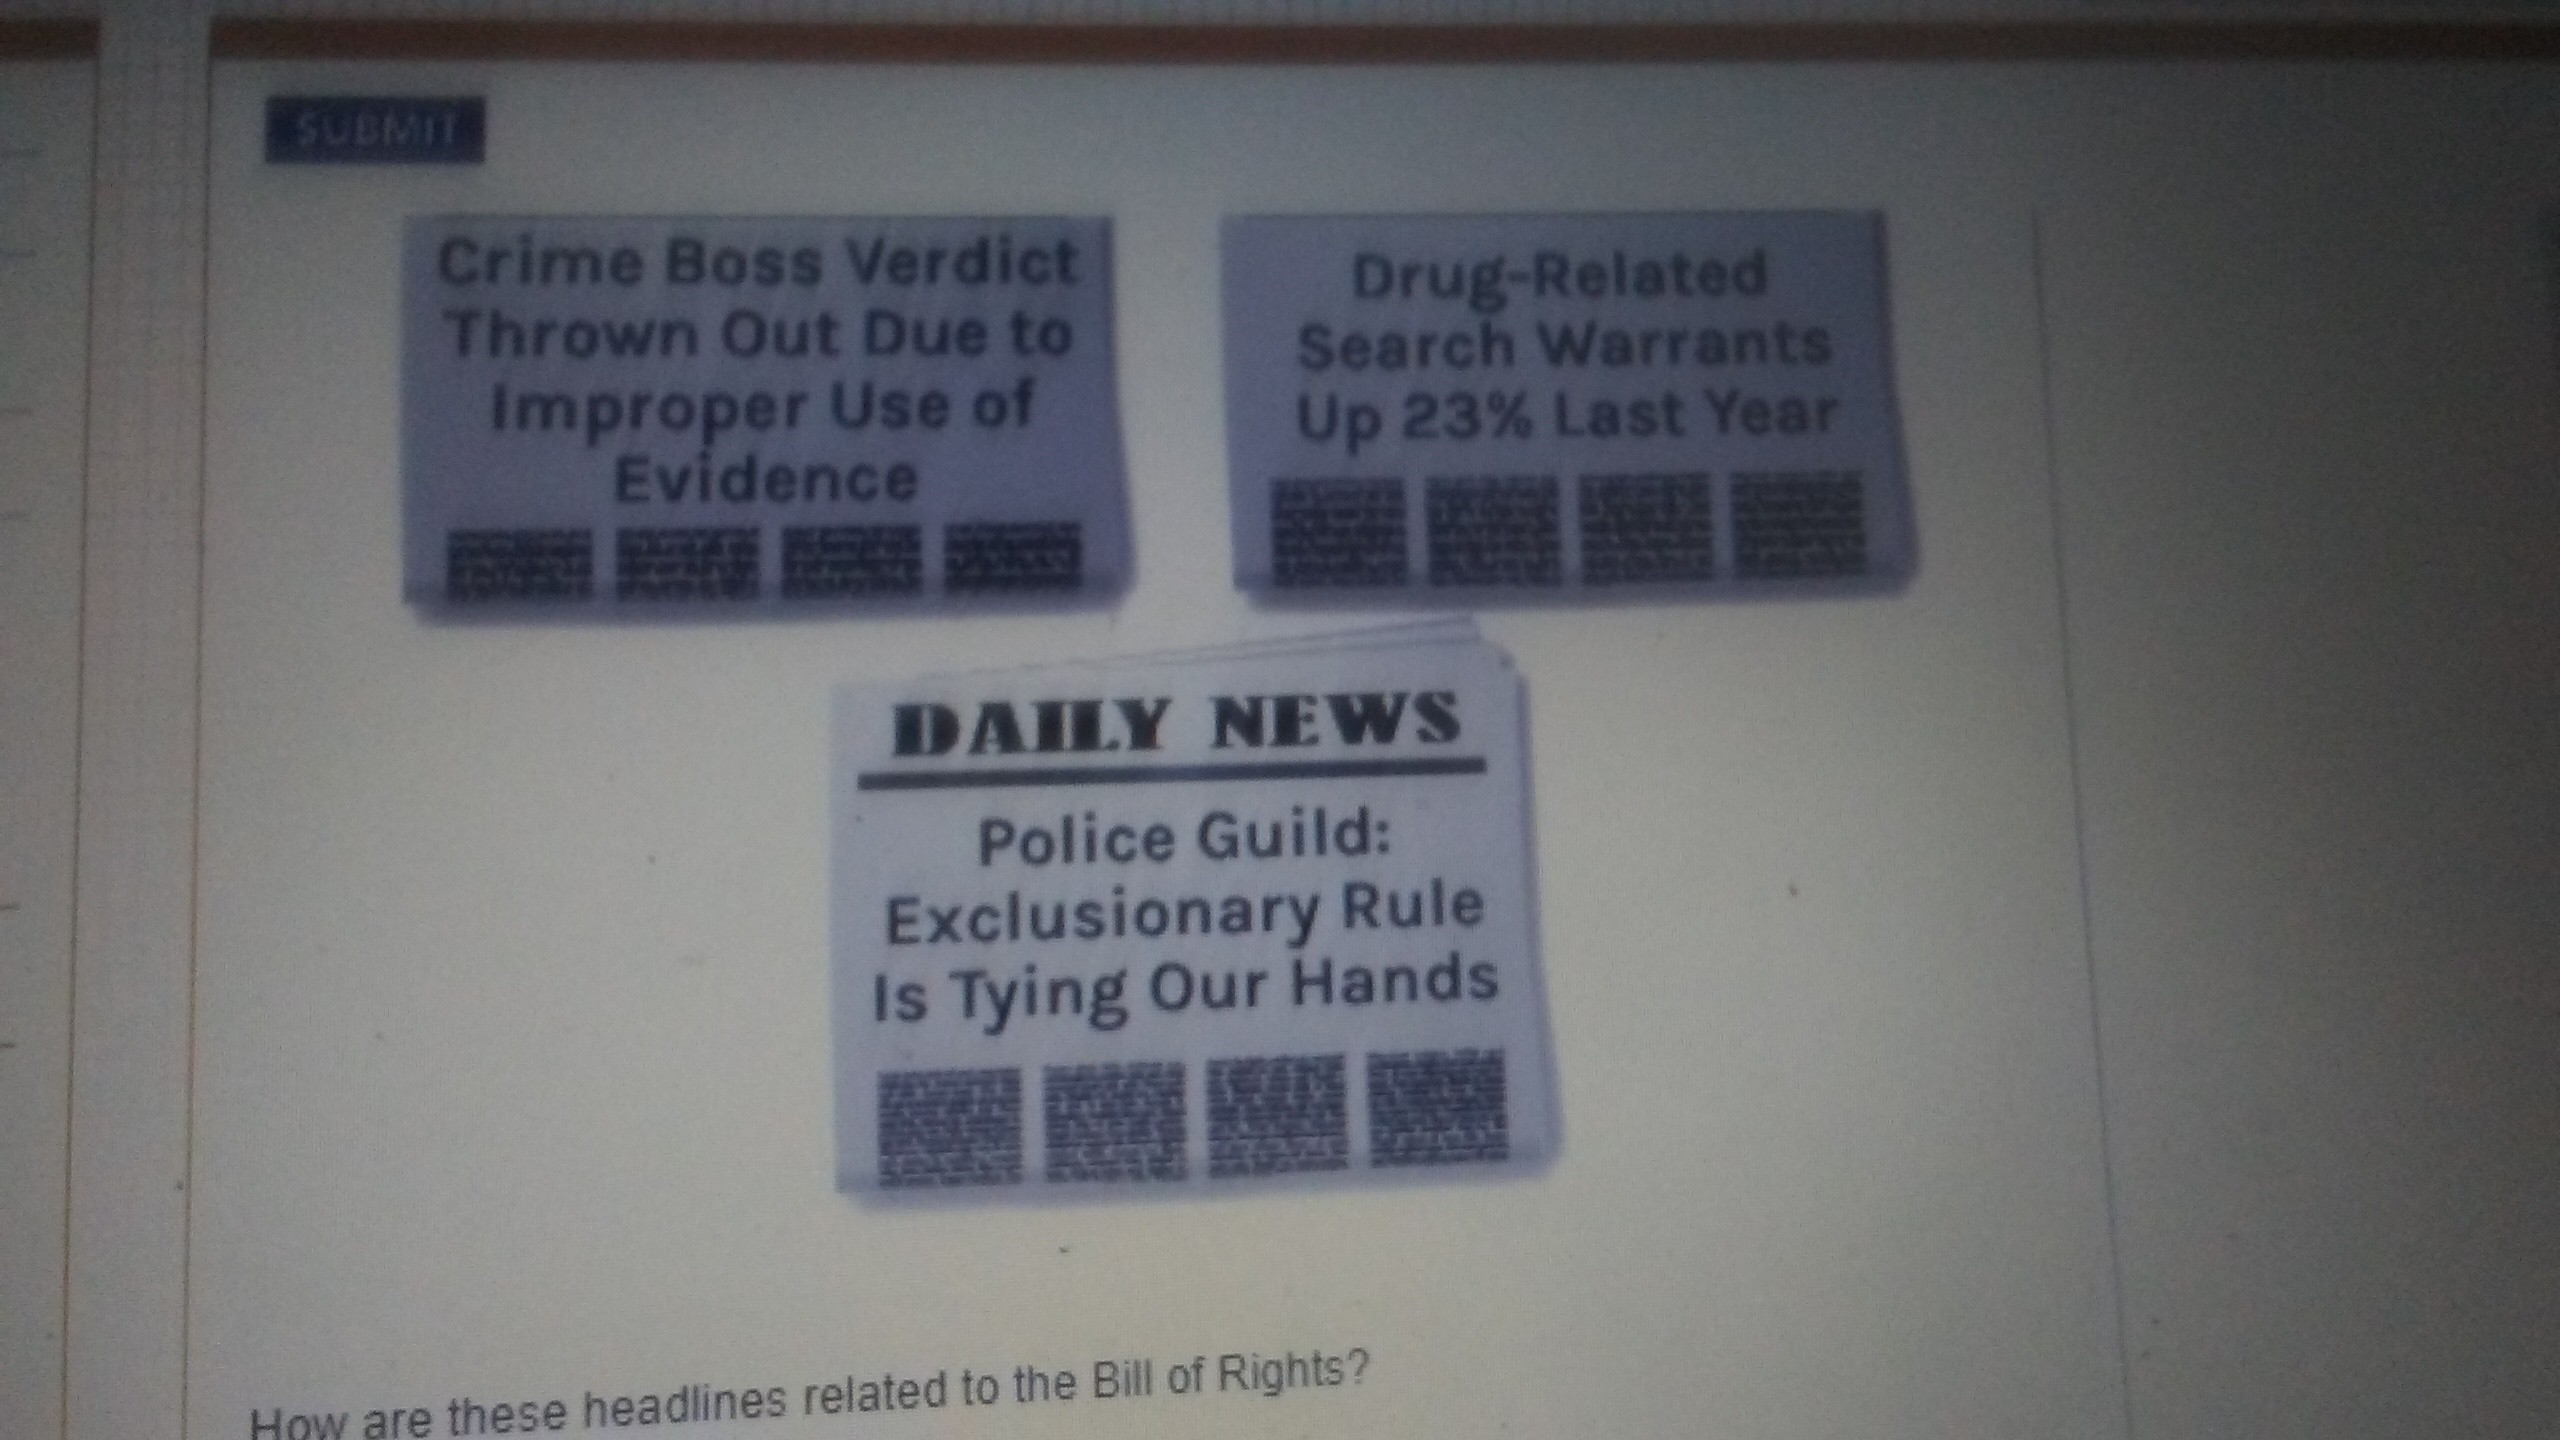 2560x1440 How are these headlines related to bill of rights